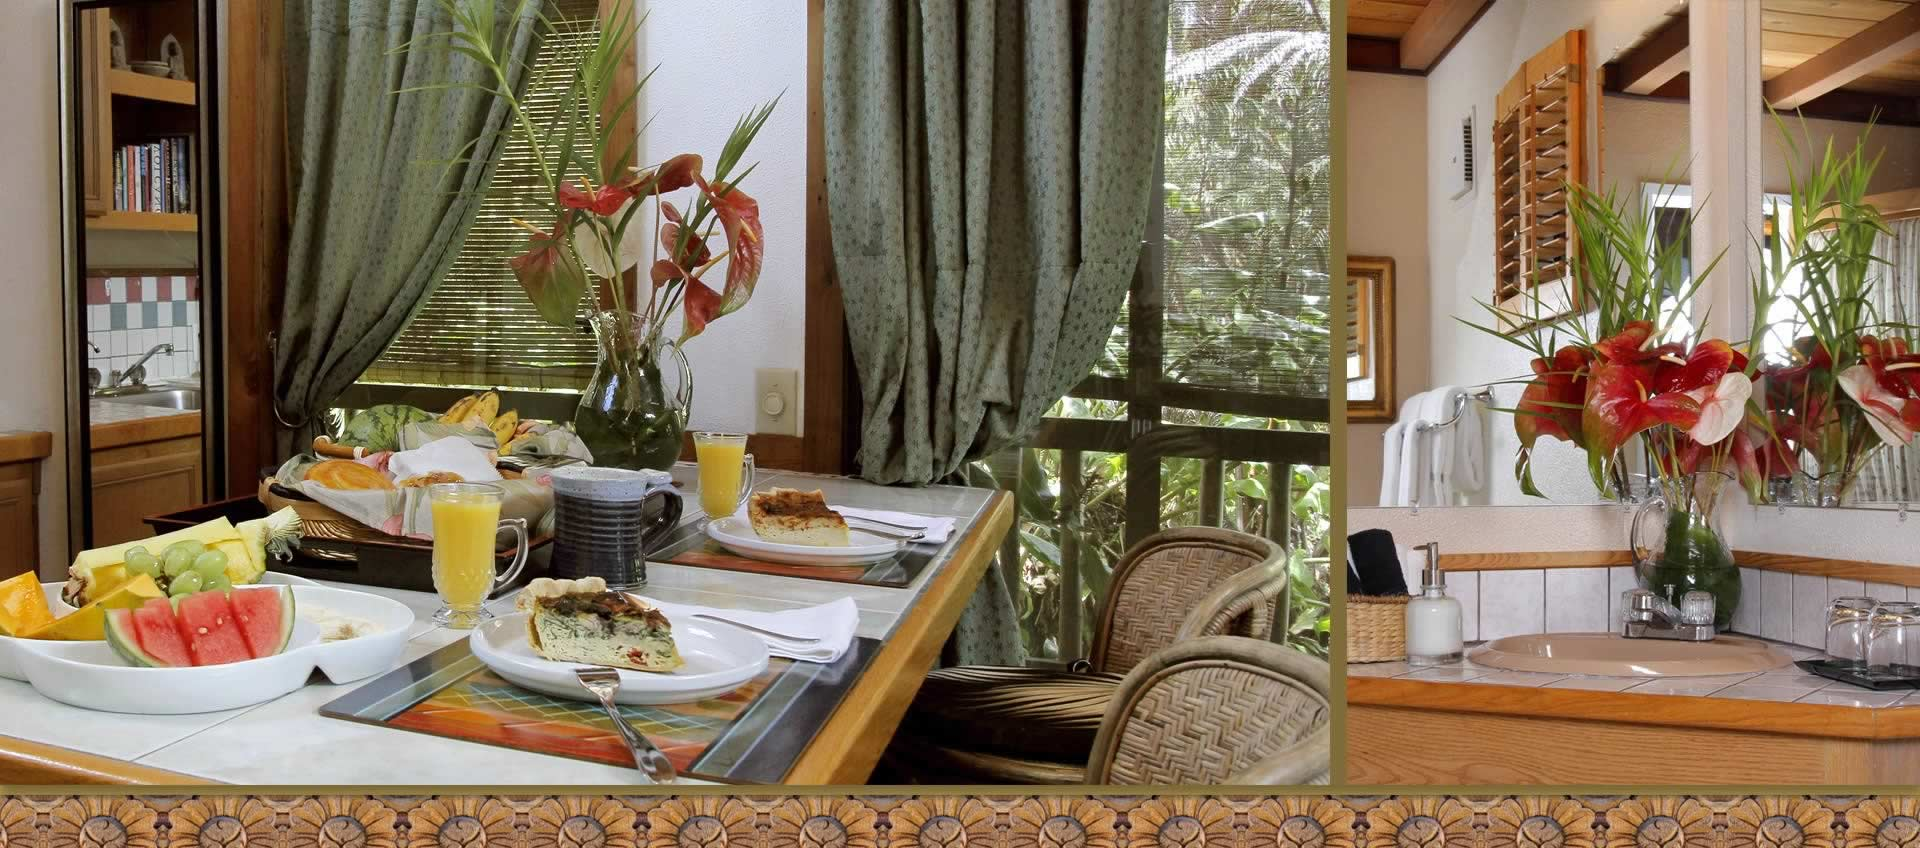 Lotus Garden Cottages Luxury Bed & Breakfast - Volcano Hawaii